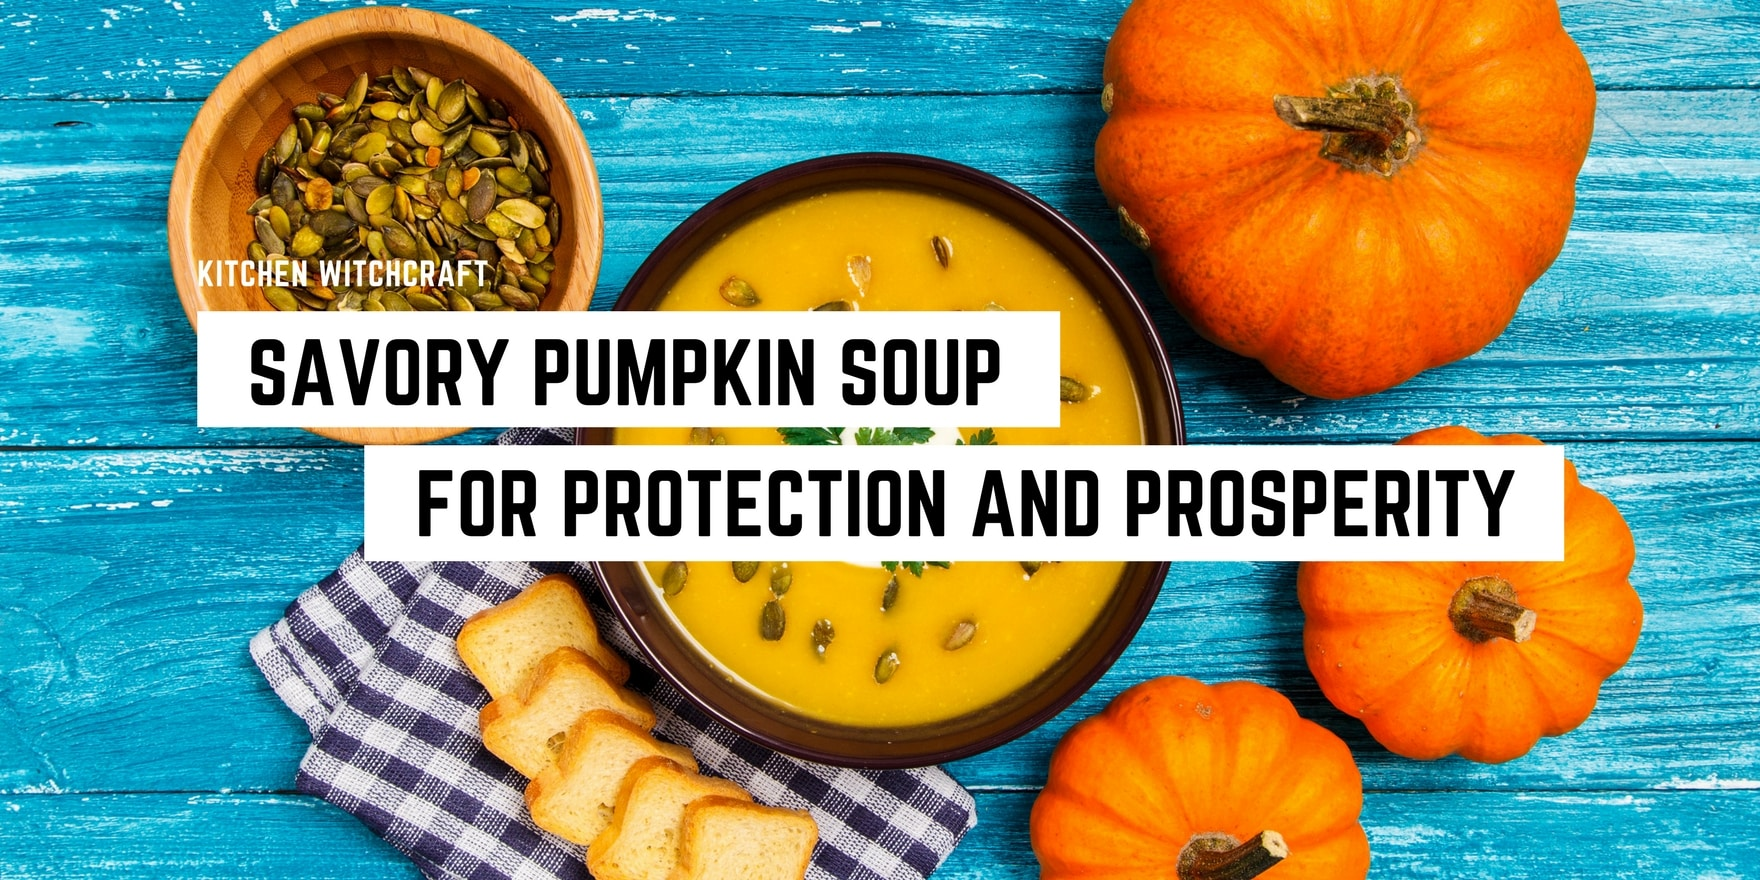 Savory Pumpkin Soup For Protection And Prosperity